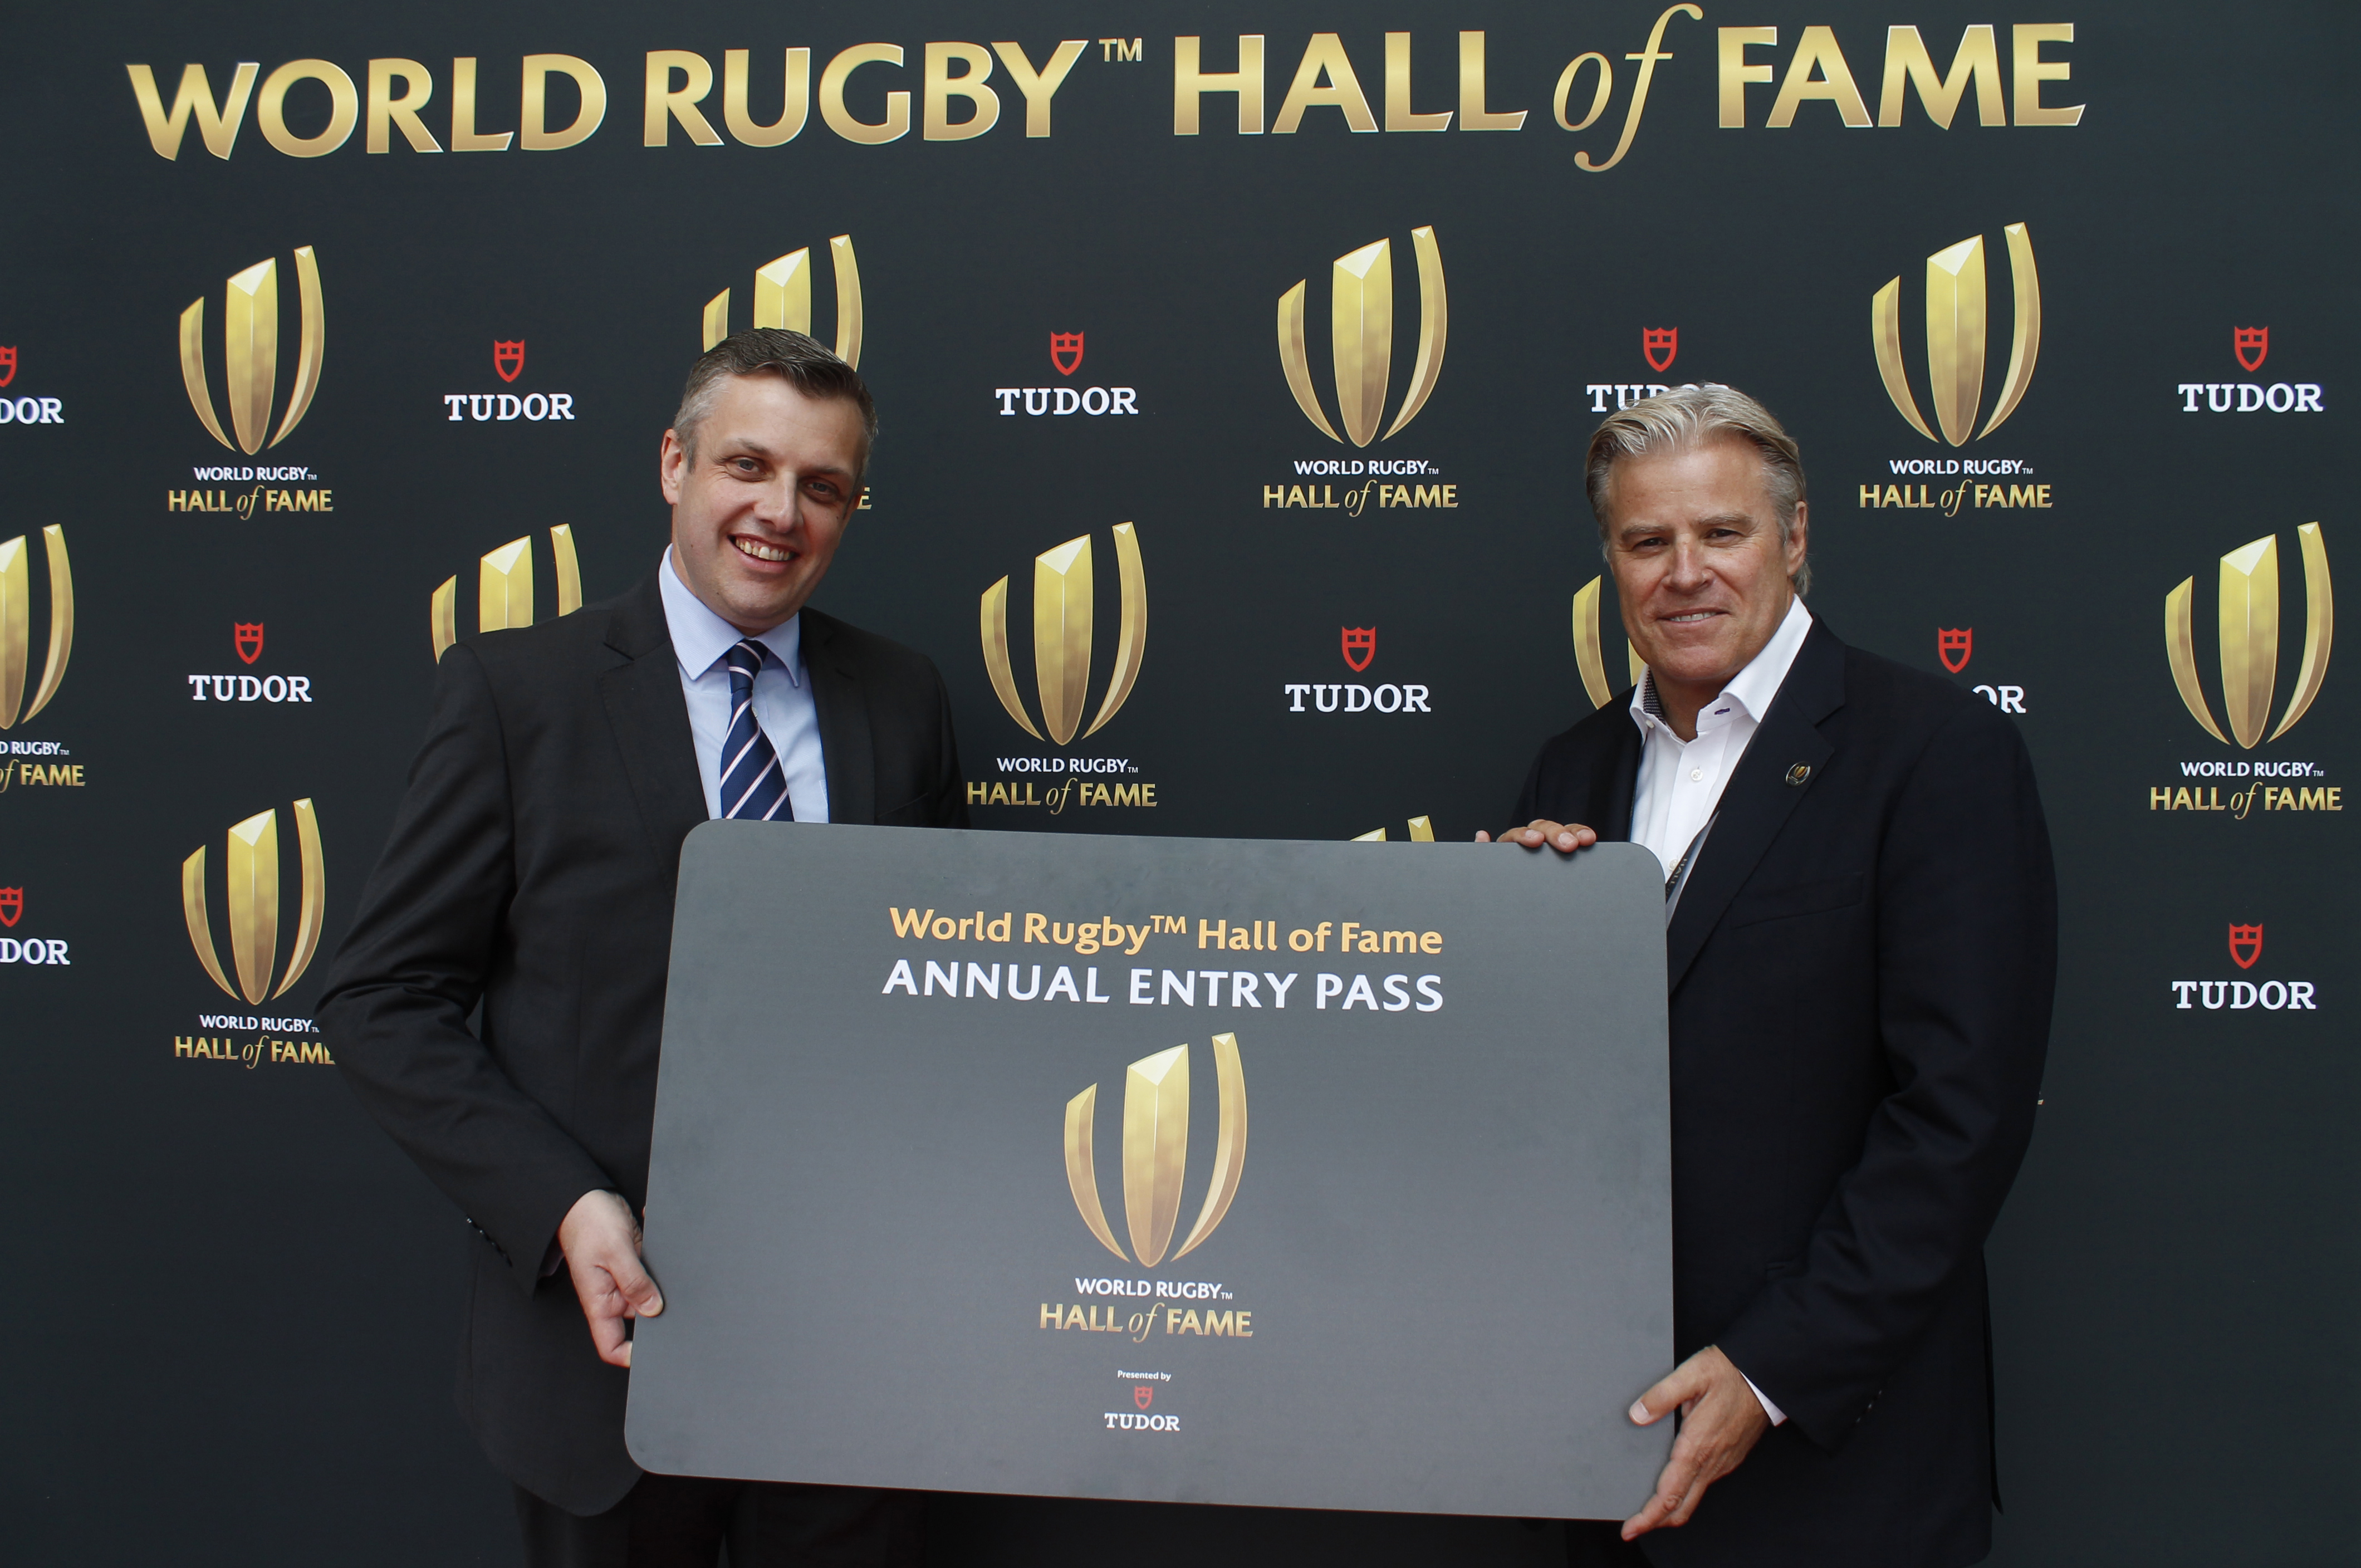 Cllr Michael Stokes, leader of Rugby Borough Council, and Brett Gosper, World Rugby chief executive officer, launch the Annual Entry Pass at the World Rugby Hall of Fame.